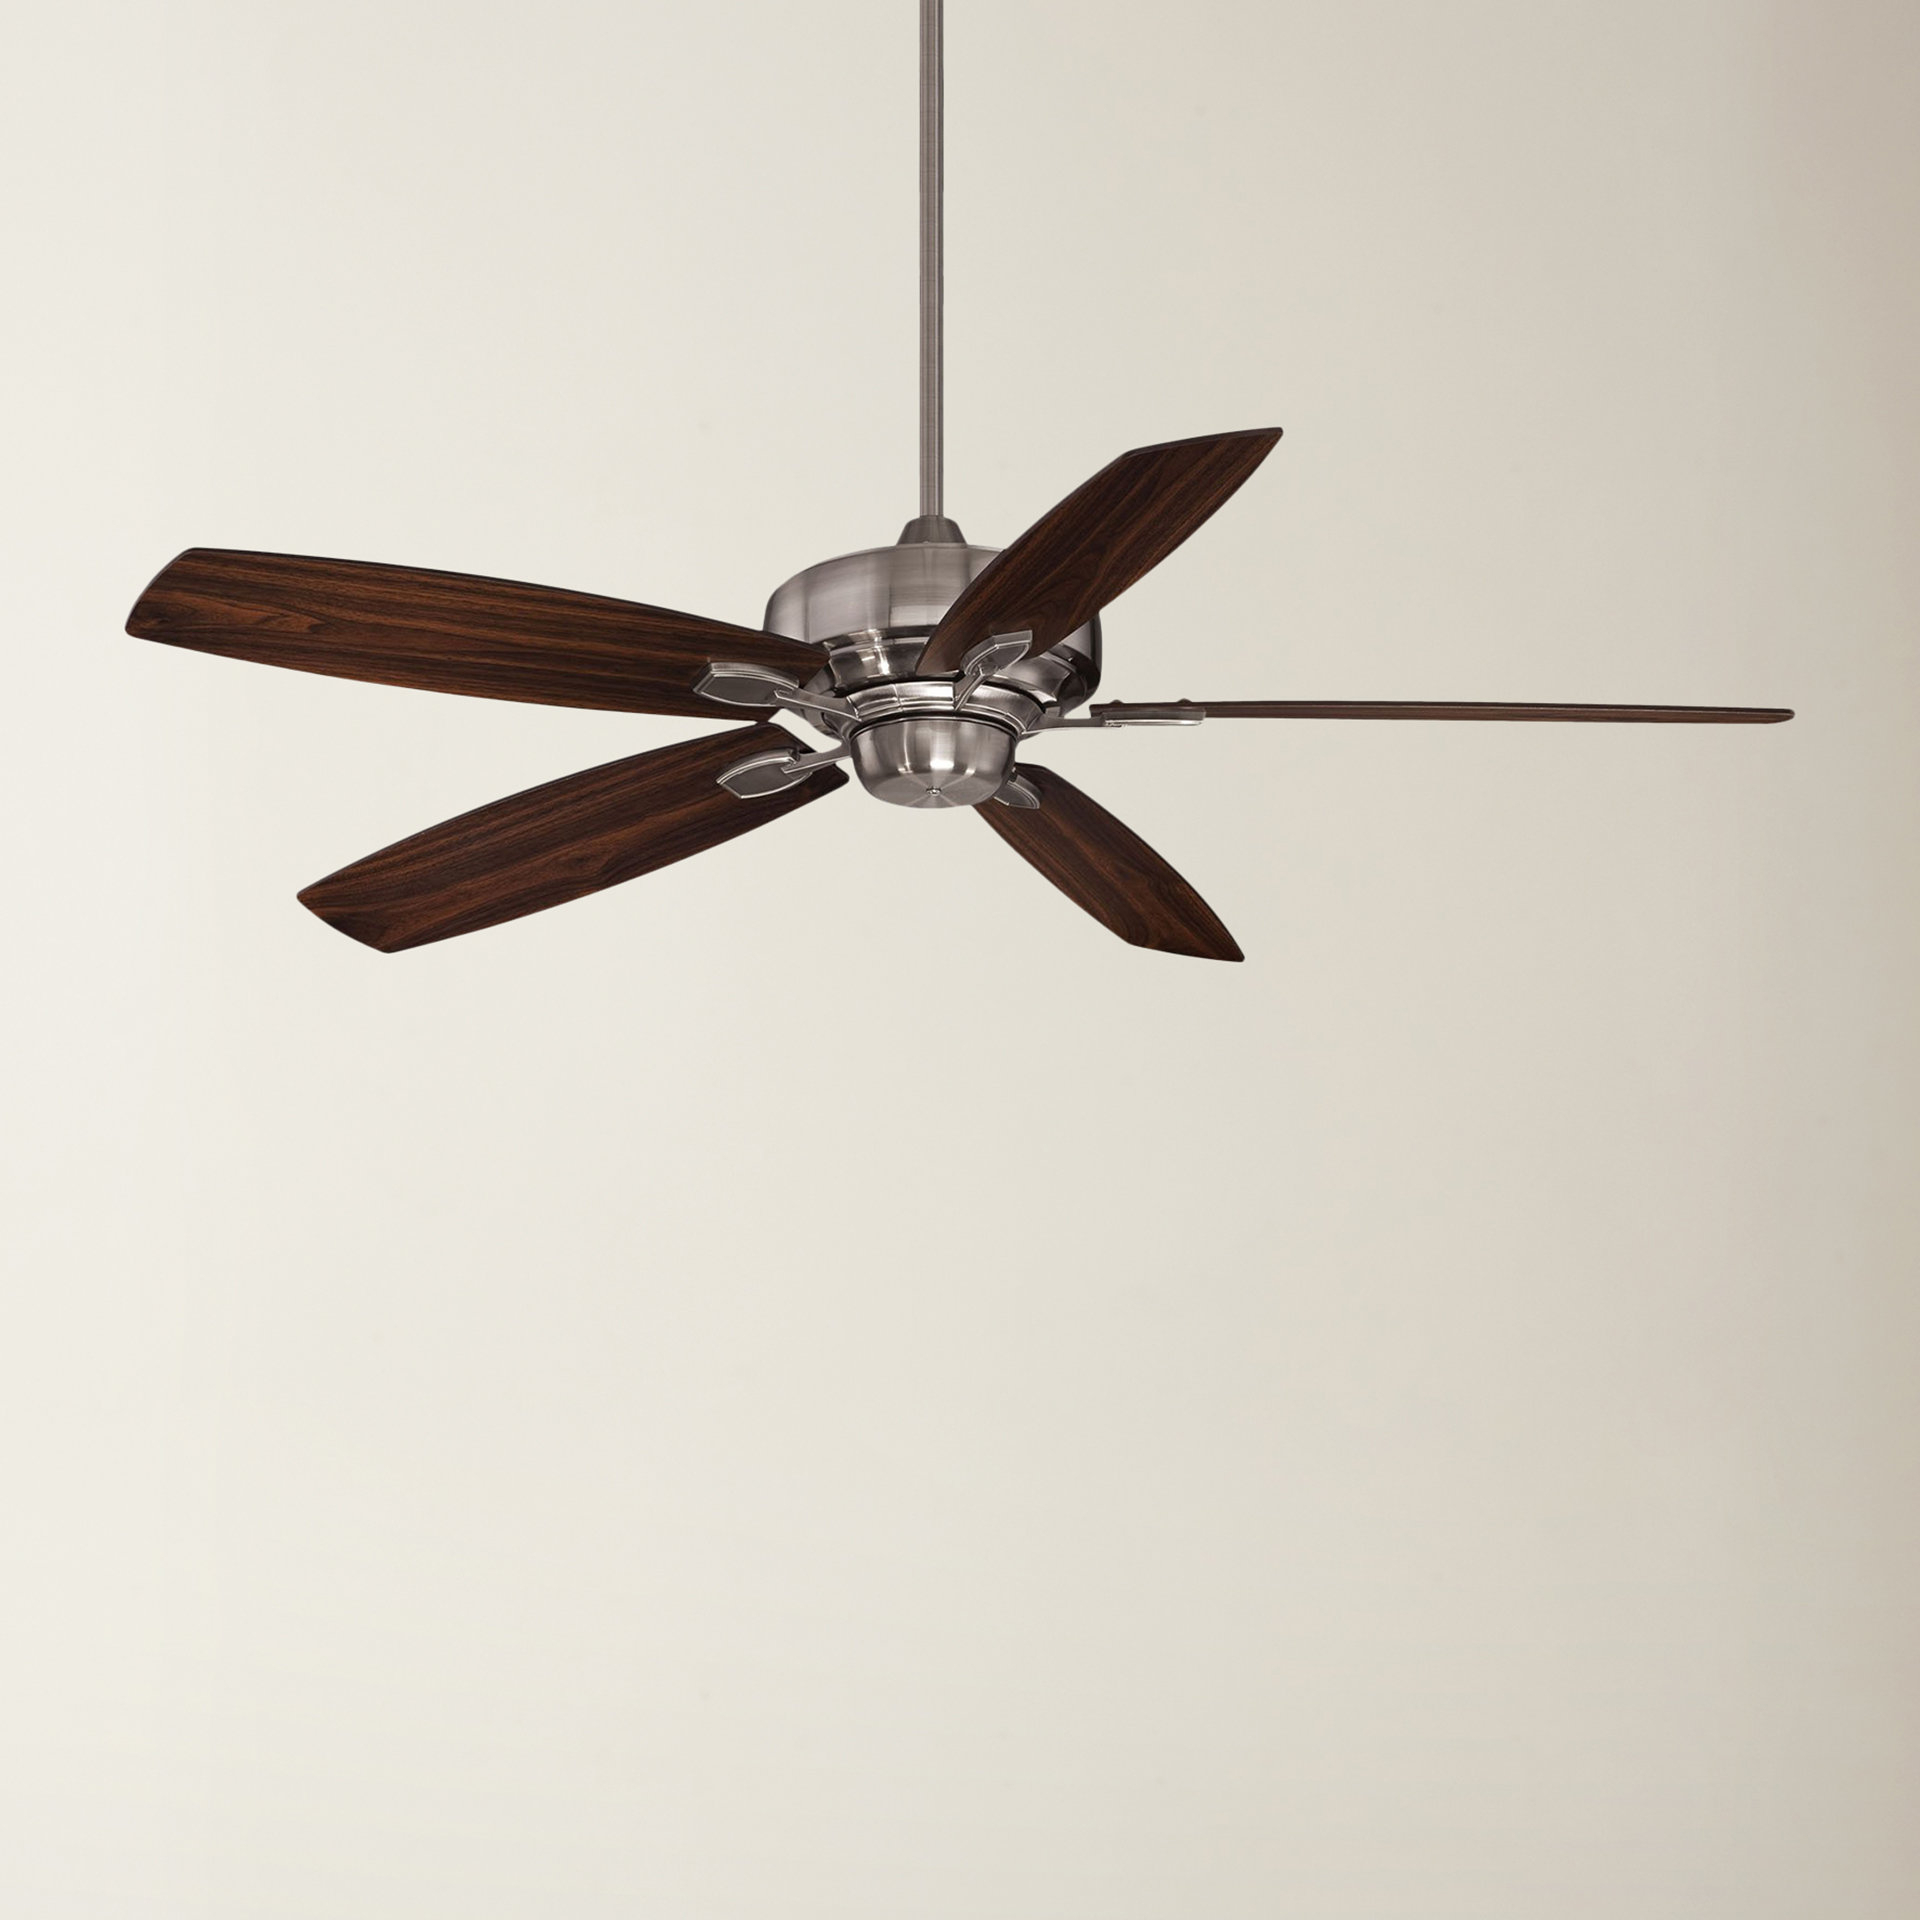 "Widely Used 52"" Peever 5 Blade Ceiling Fan Regarding Blomquist 5 Blade Outdoor Ceiling Fans (View 12 of 20)"